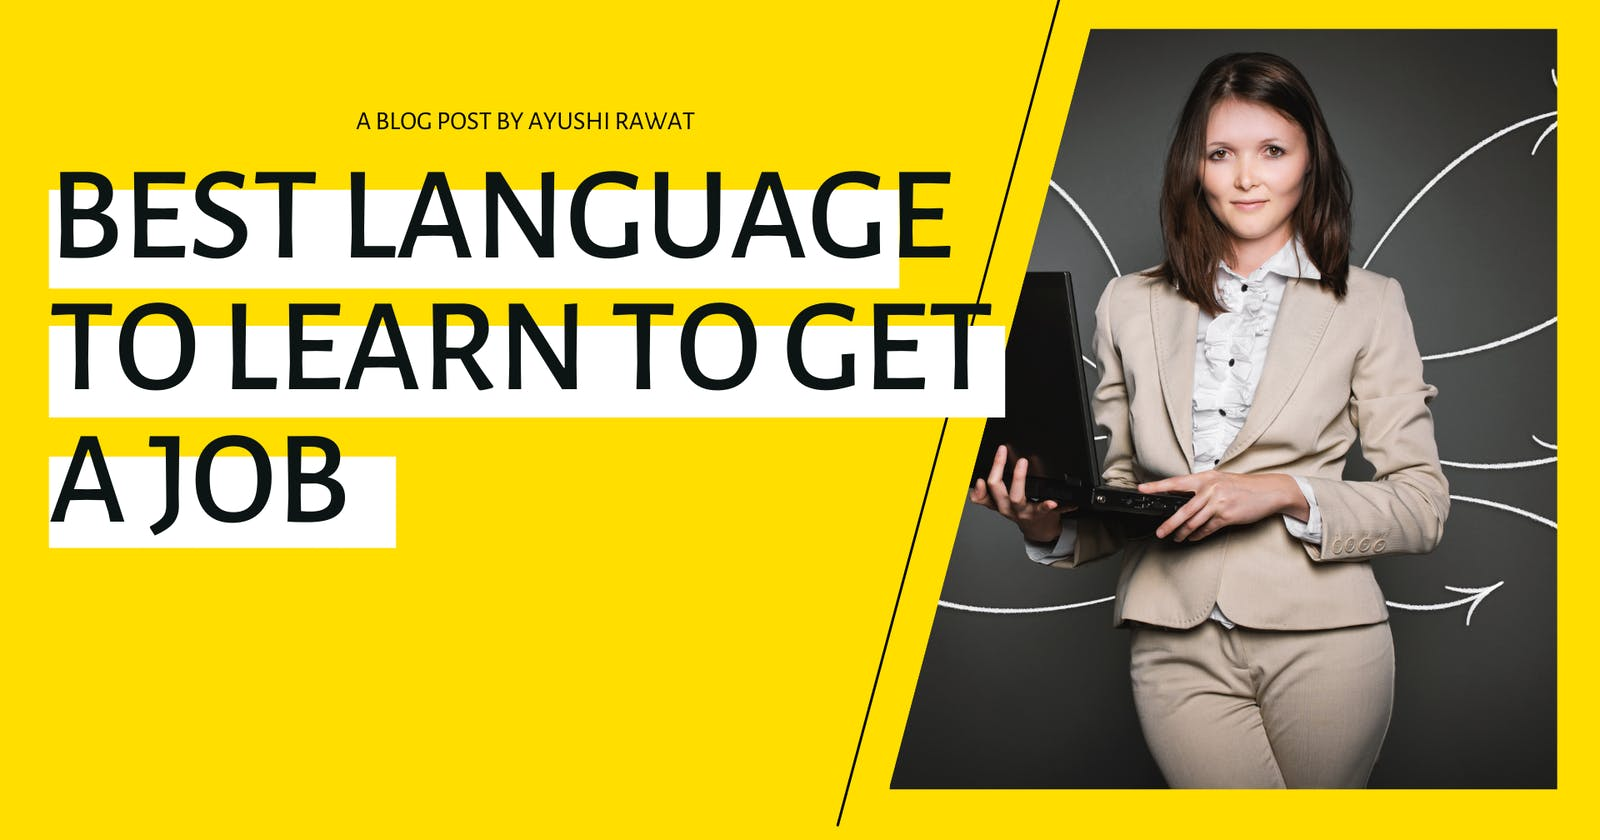 Top 5 Languages to Learn to Get a Job in 2021